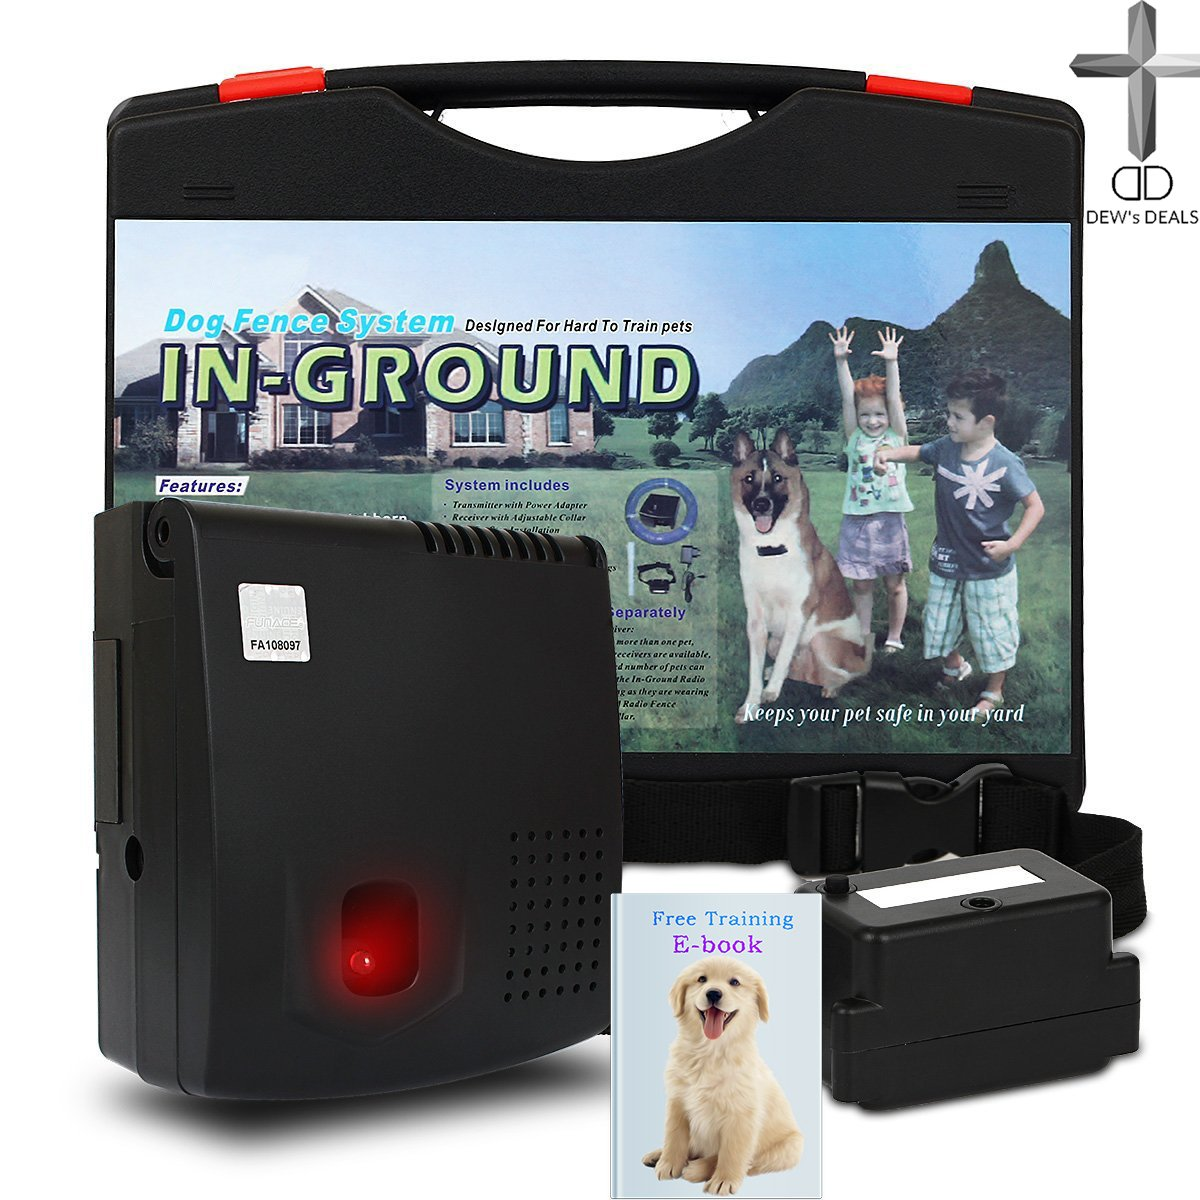 In-Ground professional grade electronic fence with adjustable wireless shock collar for Dogs by Dog Zone | Remote Underground e-Fence System that Keeps Willful Pets Close and Your Yard Beautiful